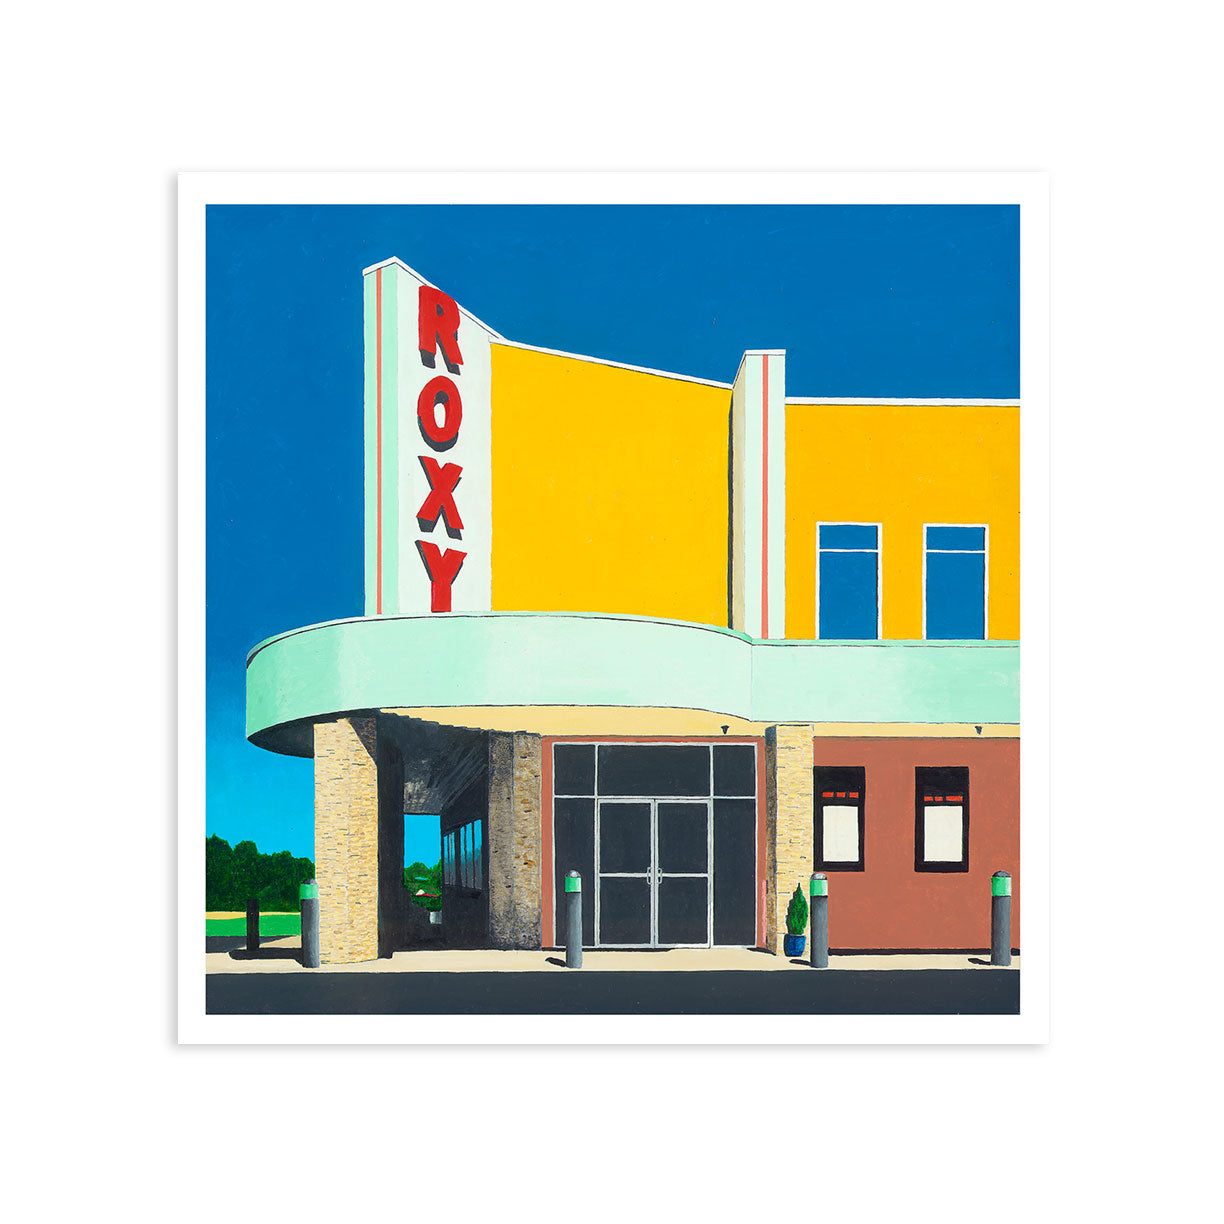 Roxy | Giclee | Limited Edition Prints | Storefront Series